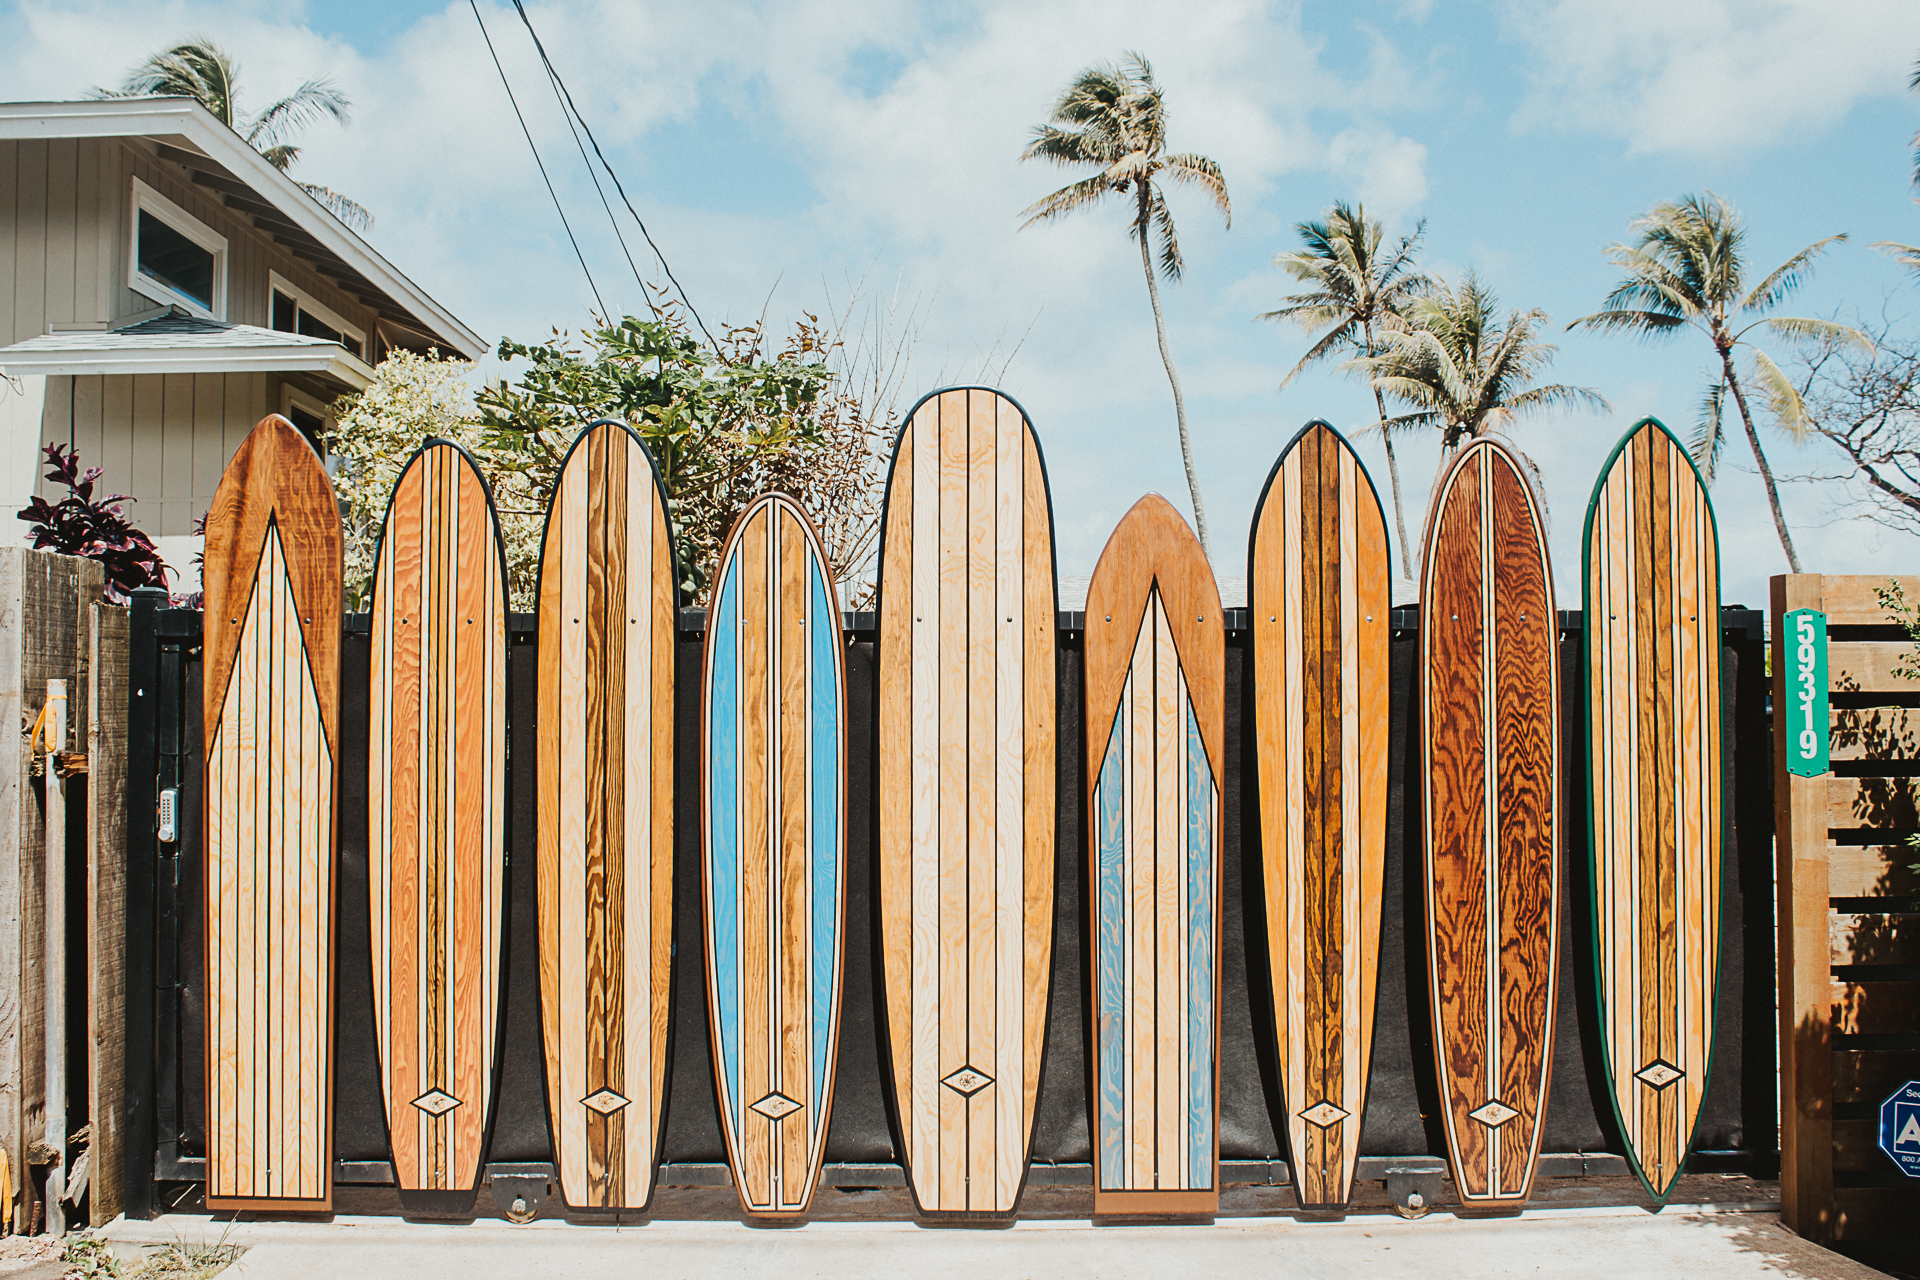 Surfboards in the Sun